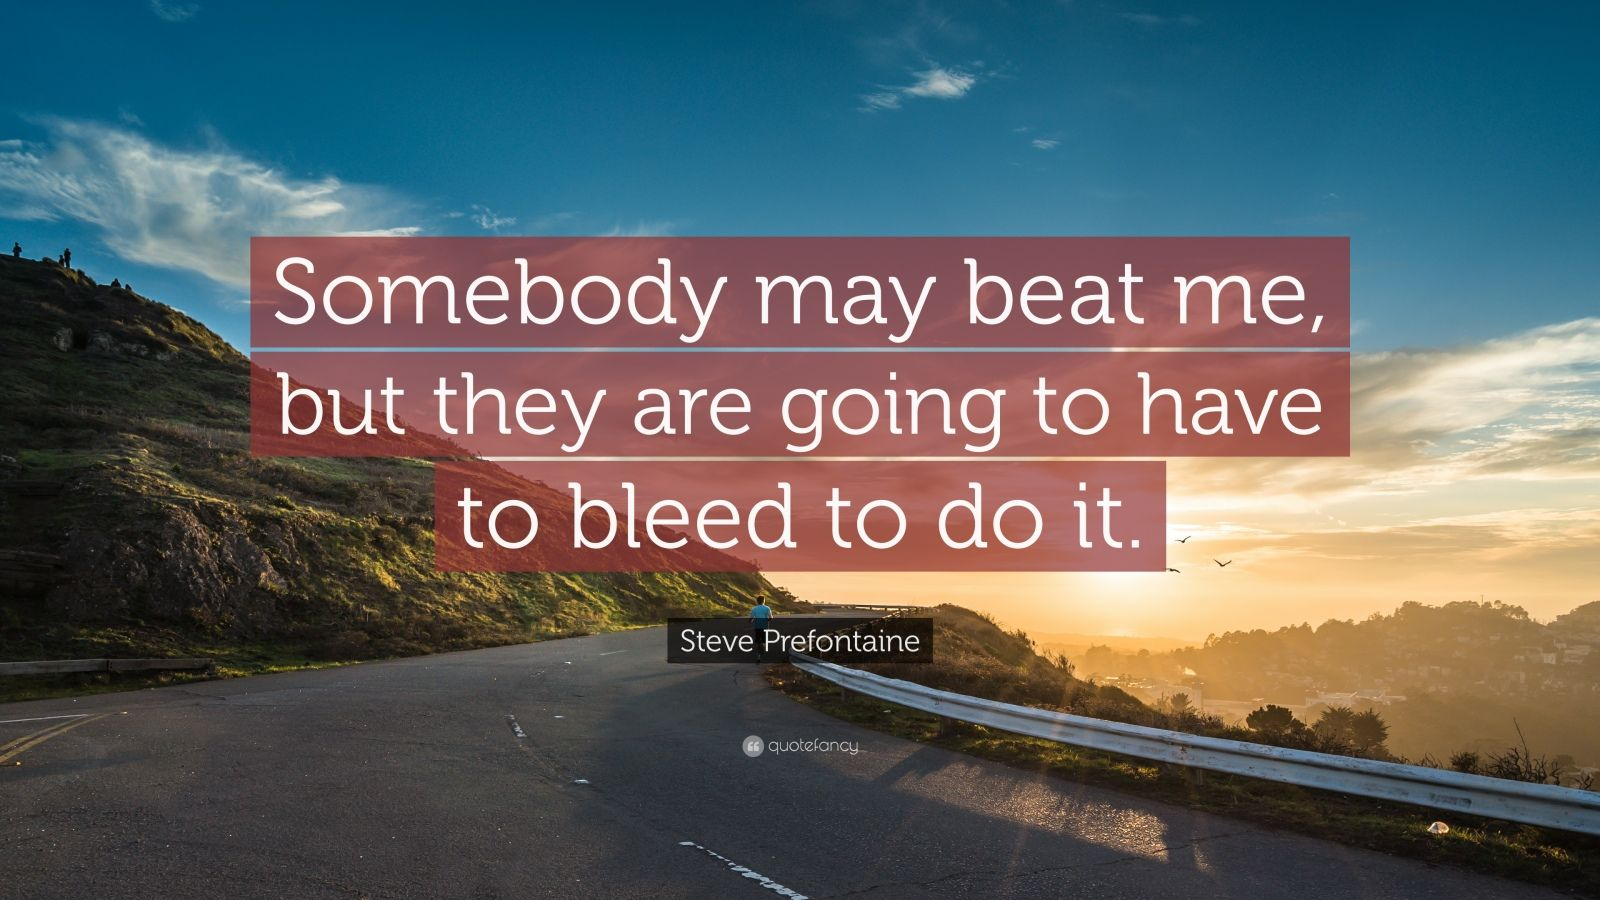 """Steve Prefontaine Quote: """"Somebody may beat me, but they are going to have to bleed to do it."""""""